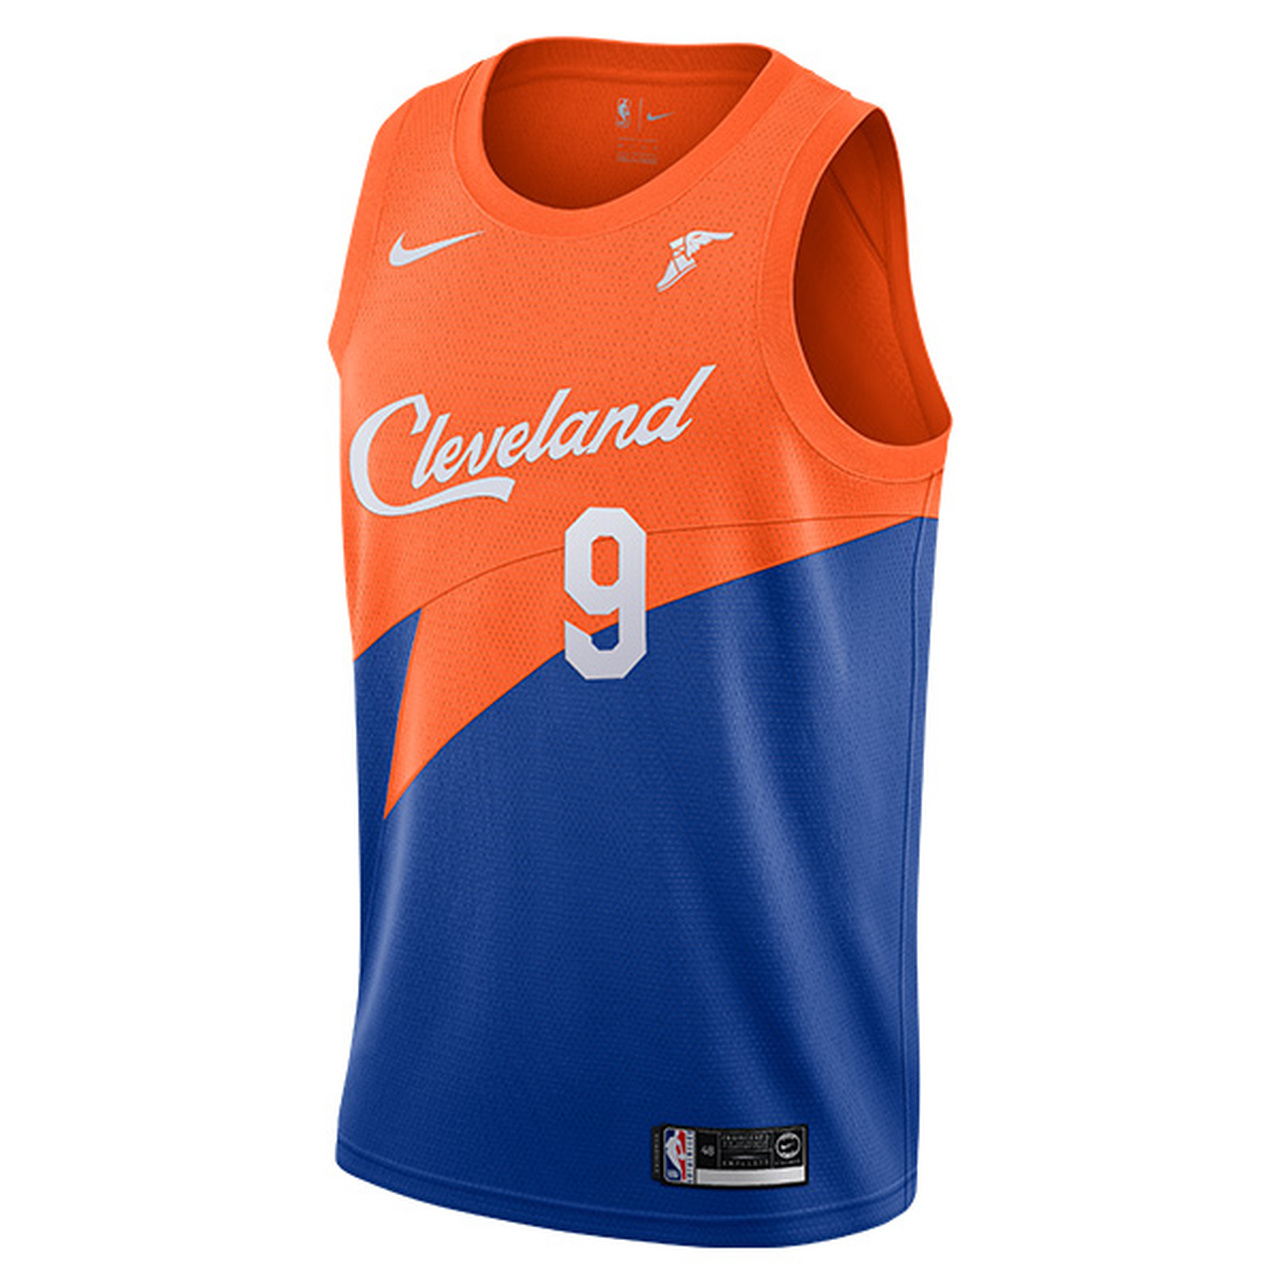 9 Channing Frye City Edition Jersey with Goodyear Wingfoot in Blue   Orange 383b3a325